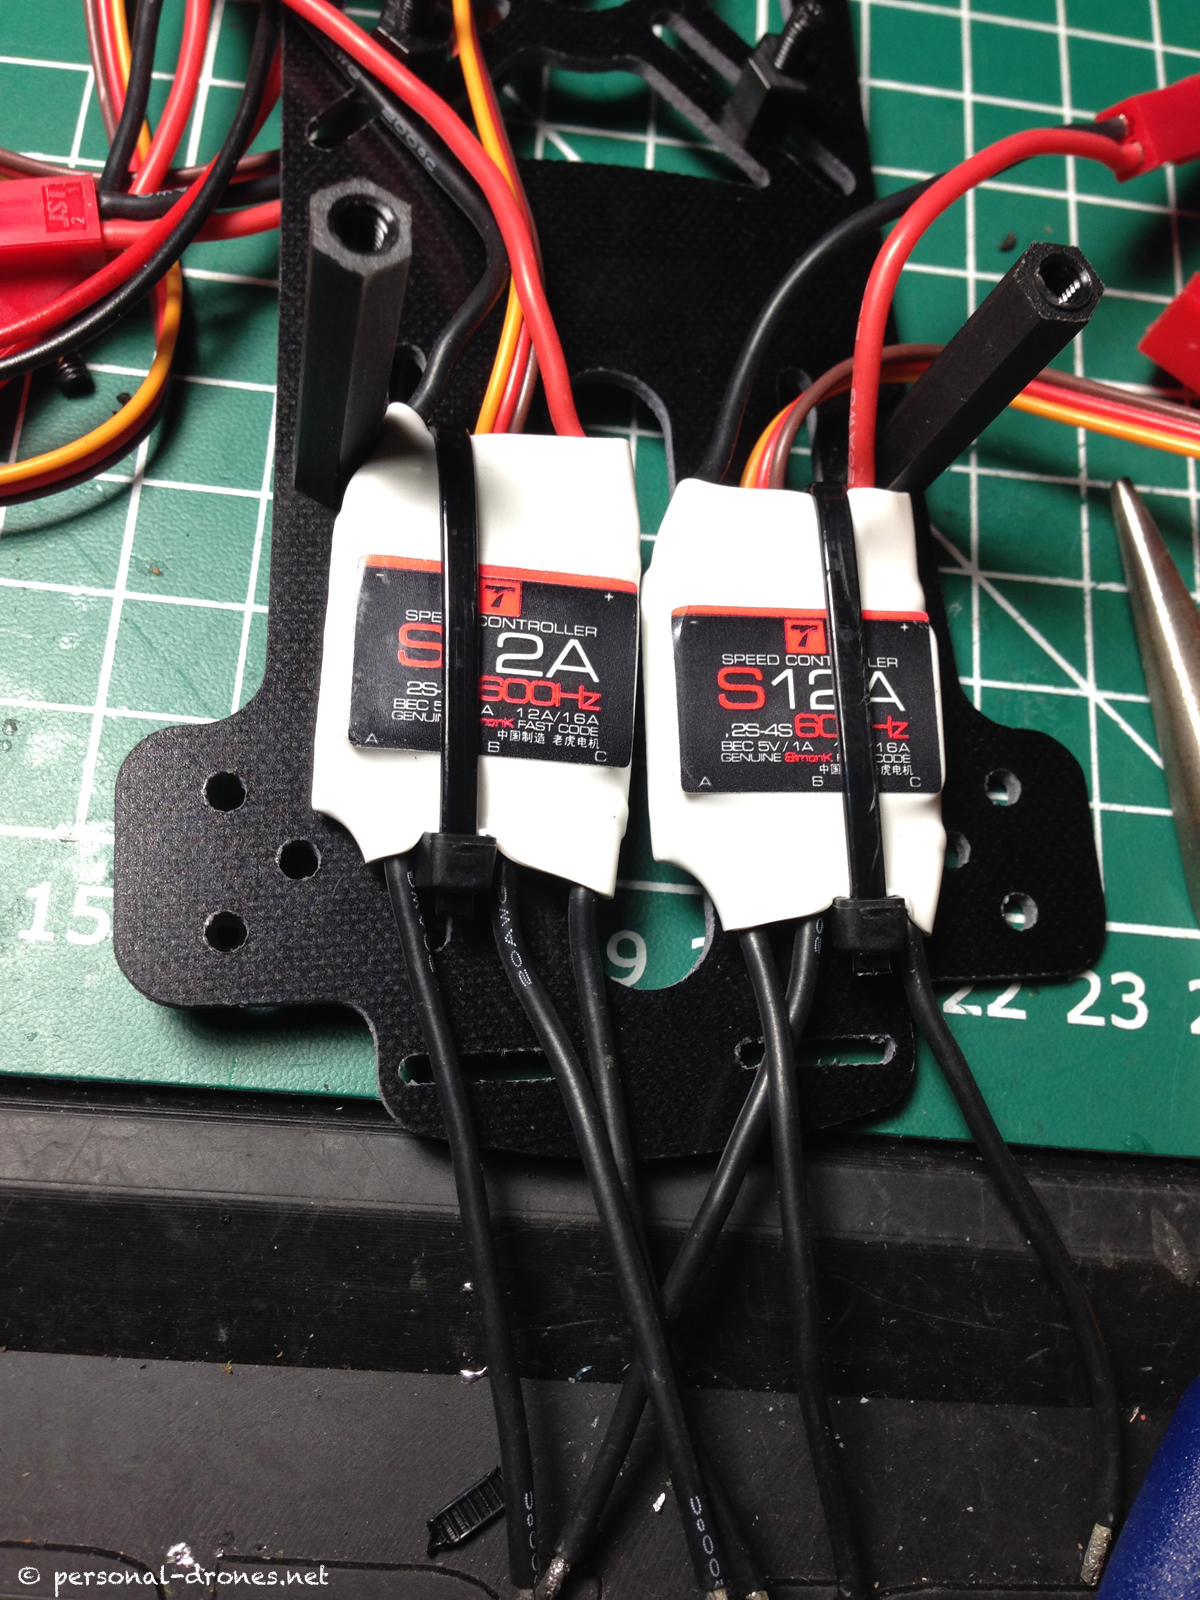 Securing the ESCs on the FlyXcopter frame